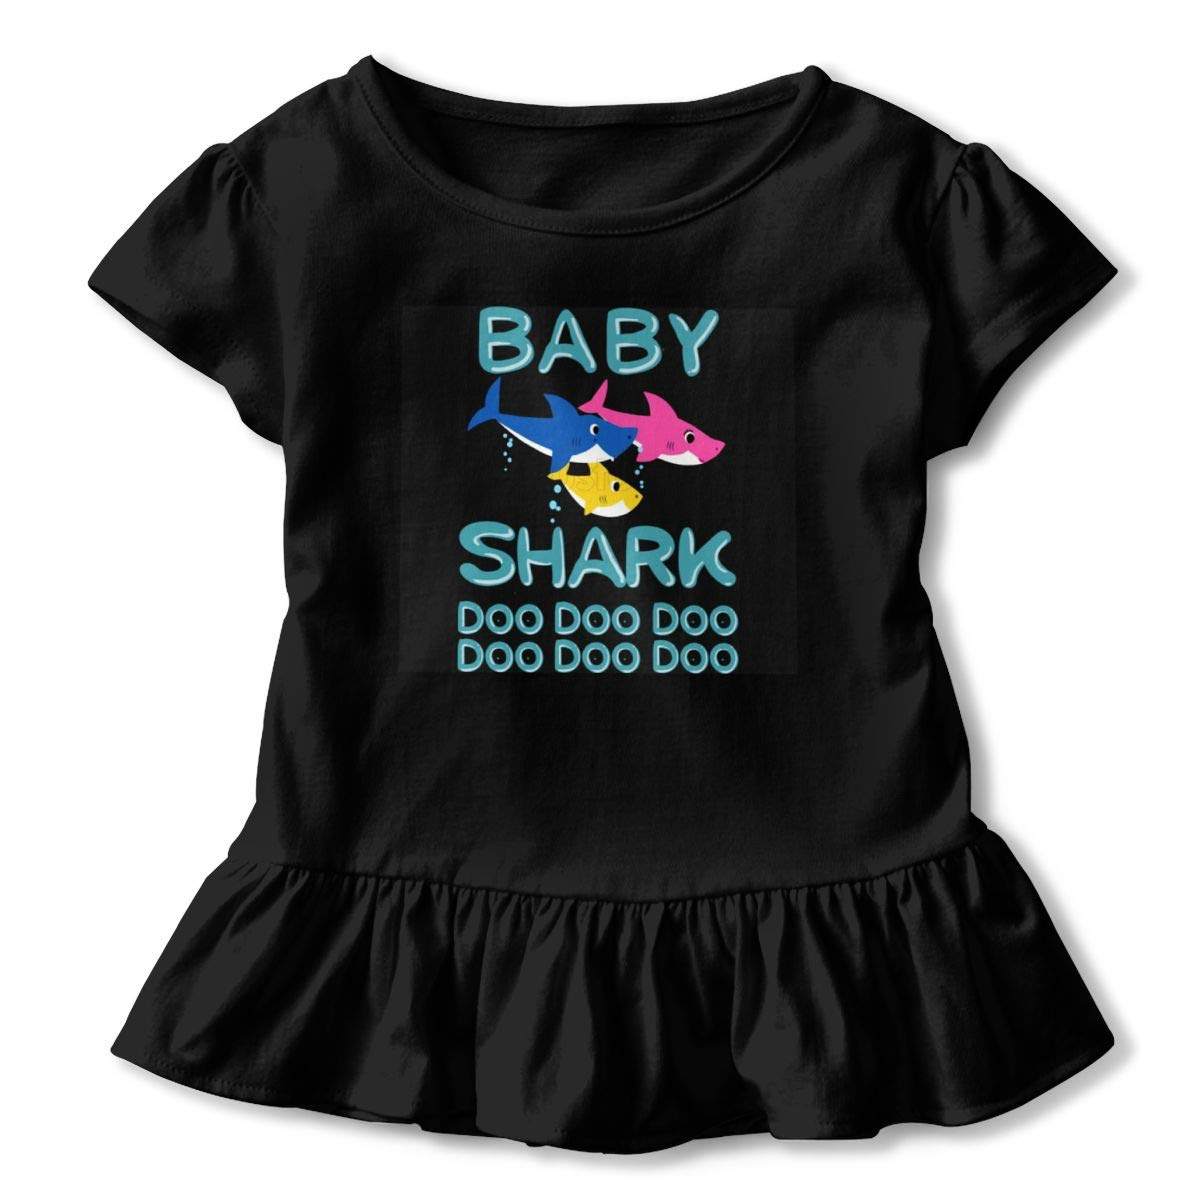 CZnuen Baby Shark Doo Doo Doo Baby Girls Basic Short Puff Sleeve Round Neck Ruffle T-Shirt